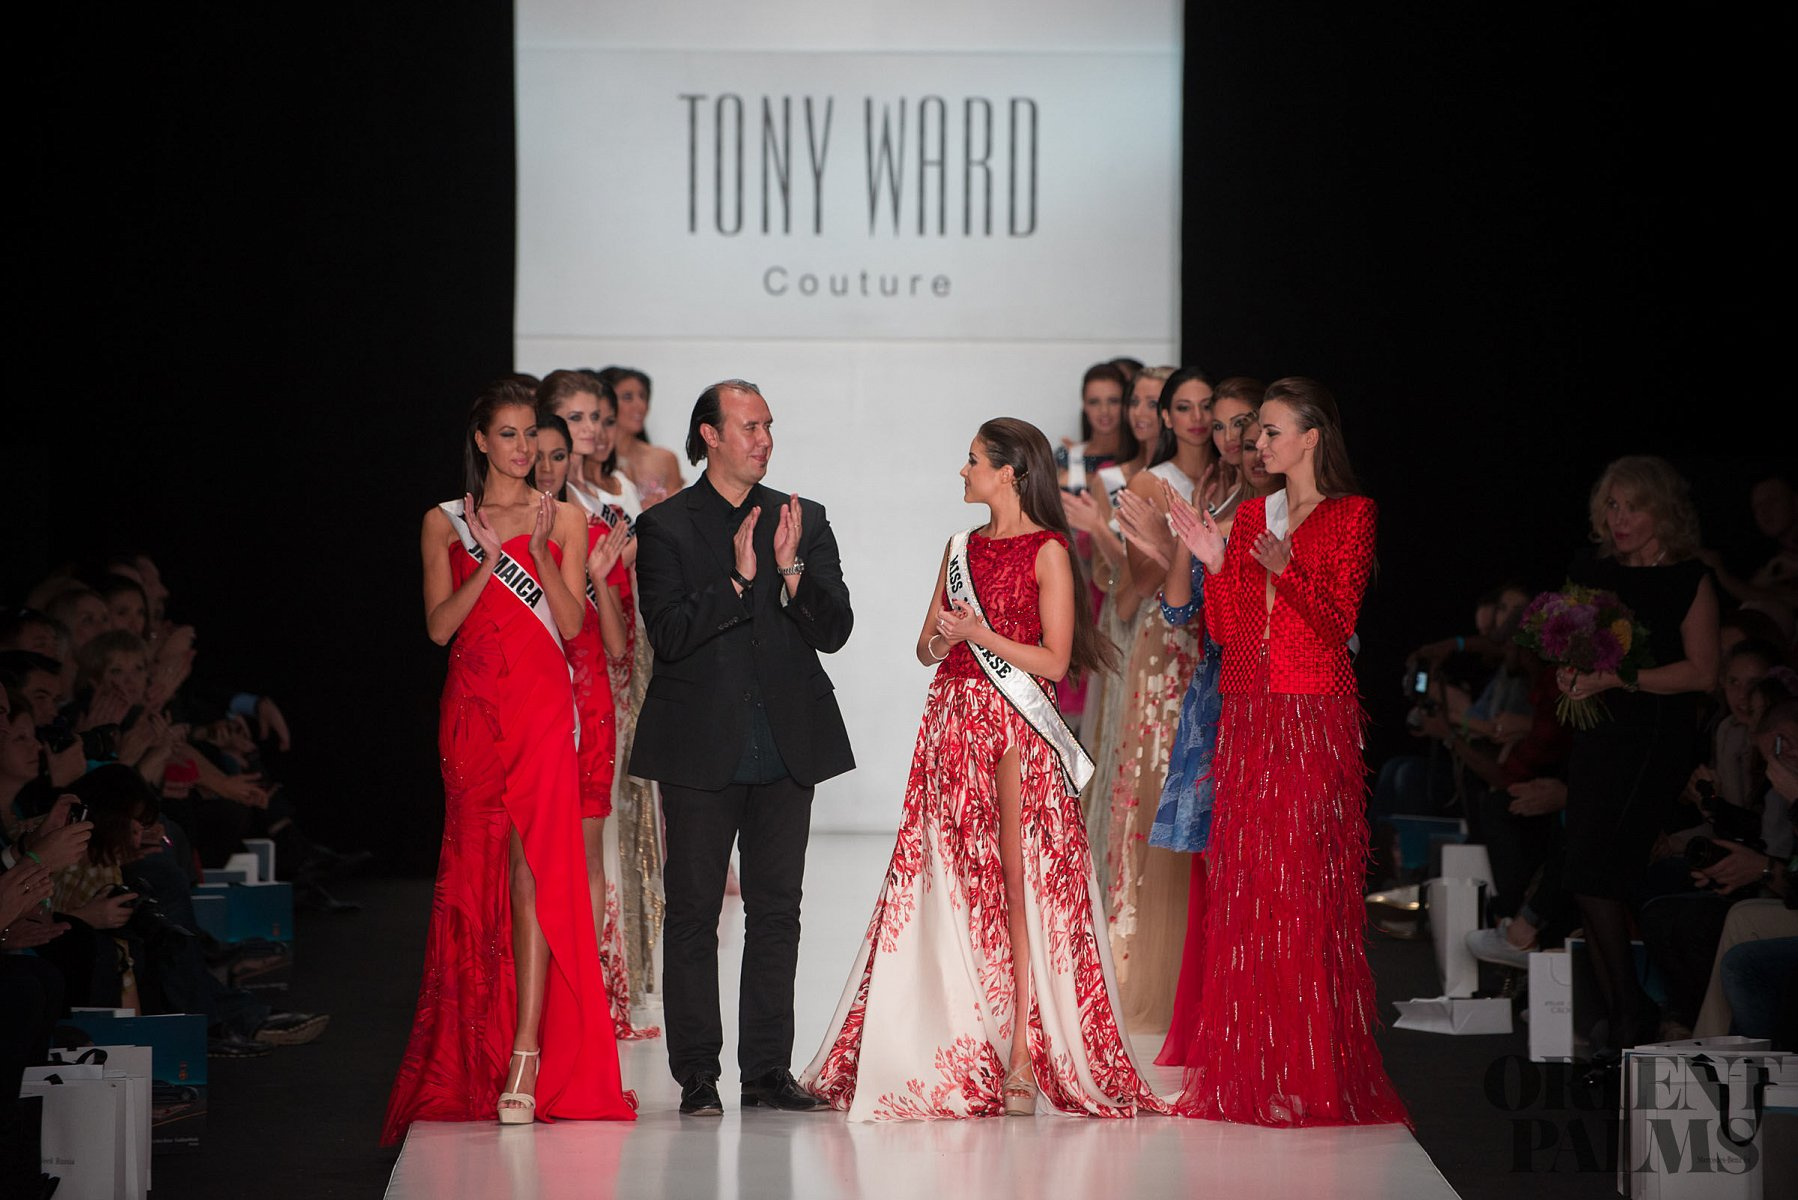 Tony Ward Miss Universe 2013, Moscow - Couture - 1